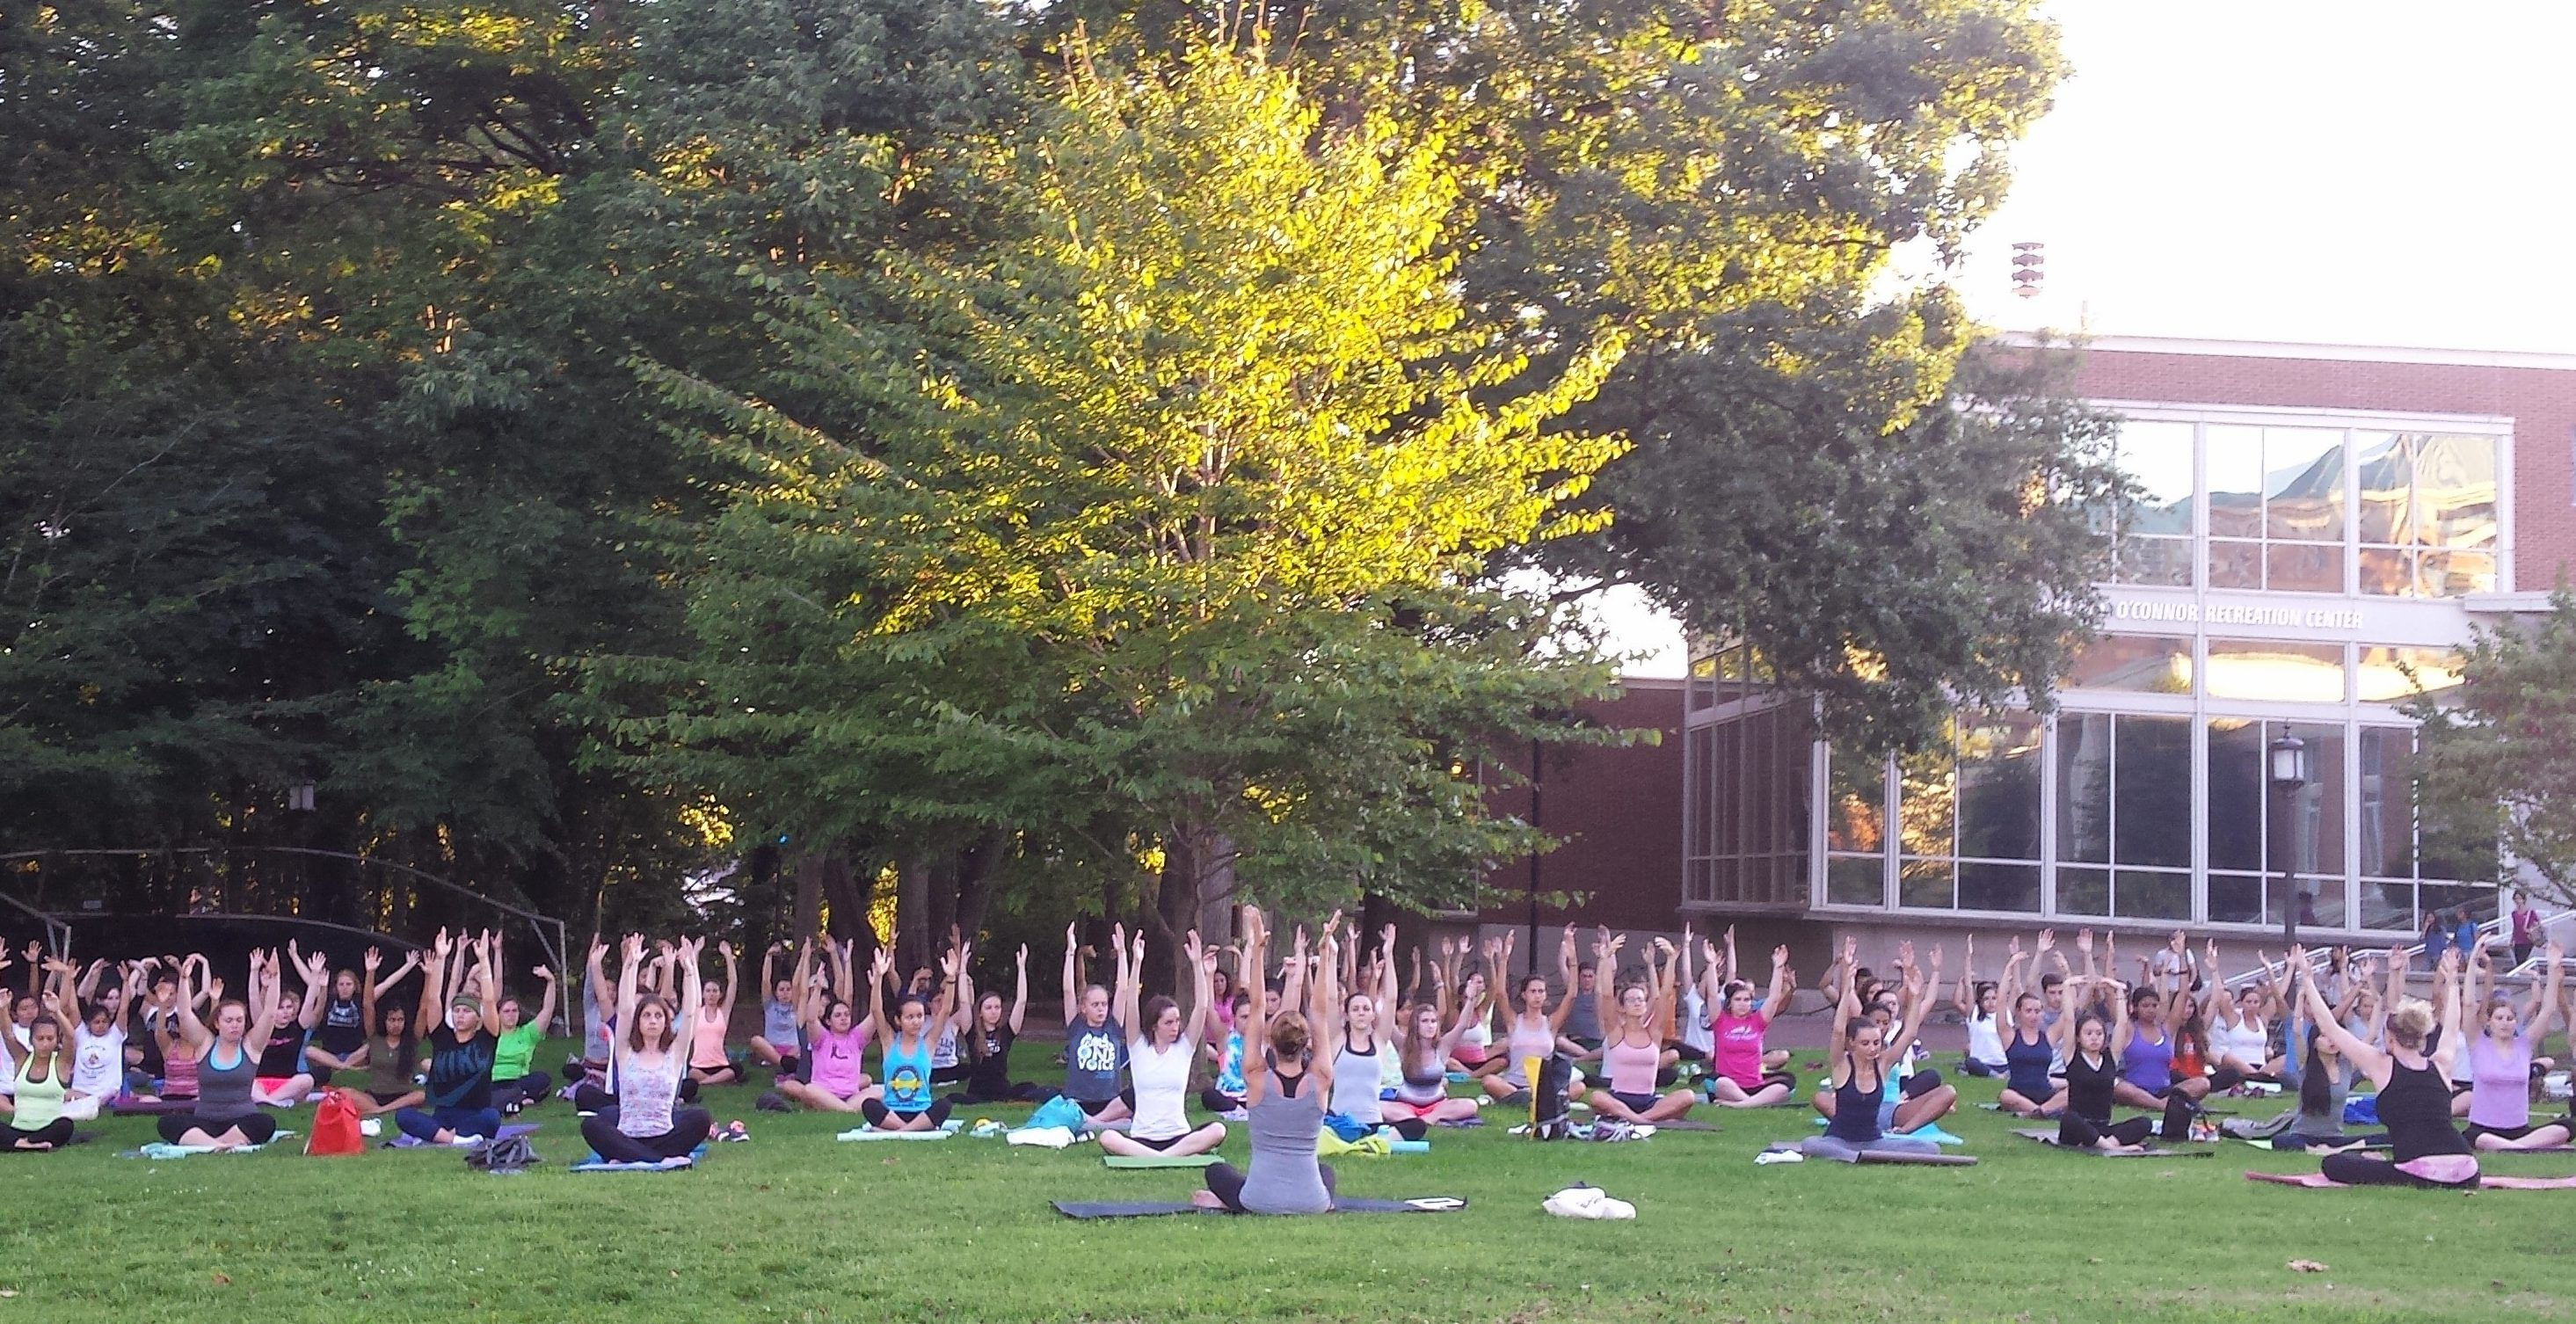 A wide view of many participants stretching on yoga mats with a lead instructor.